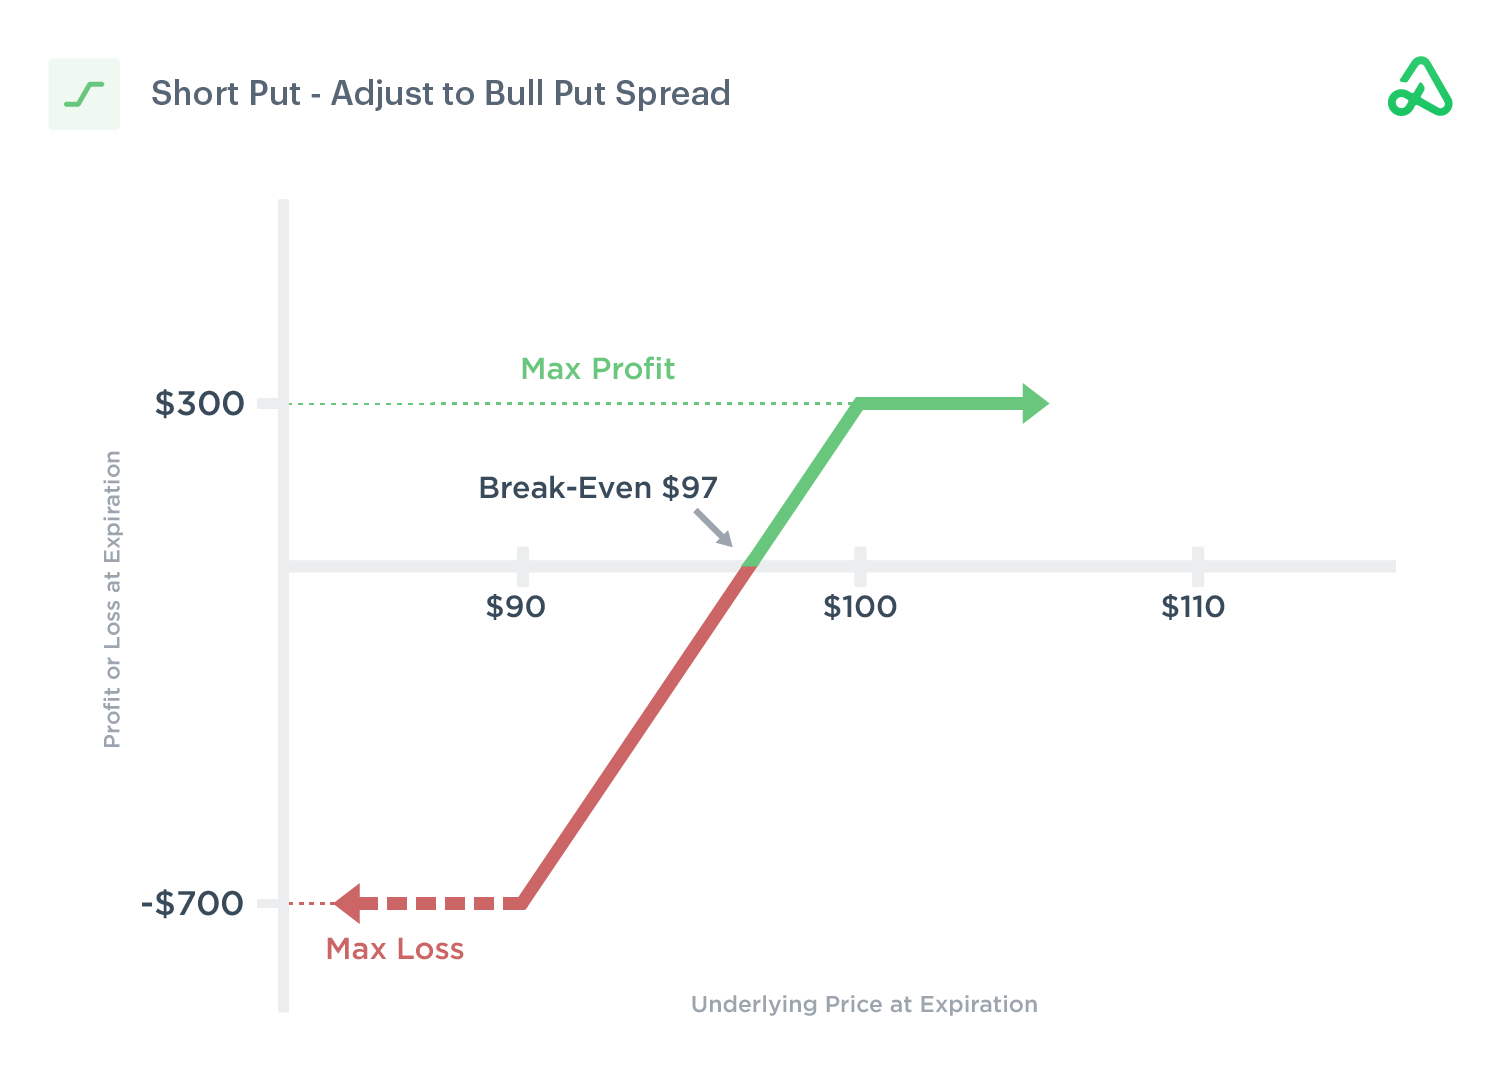 Image of a short put adjusted to a bull put credit spread